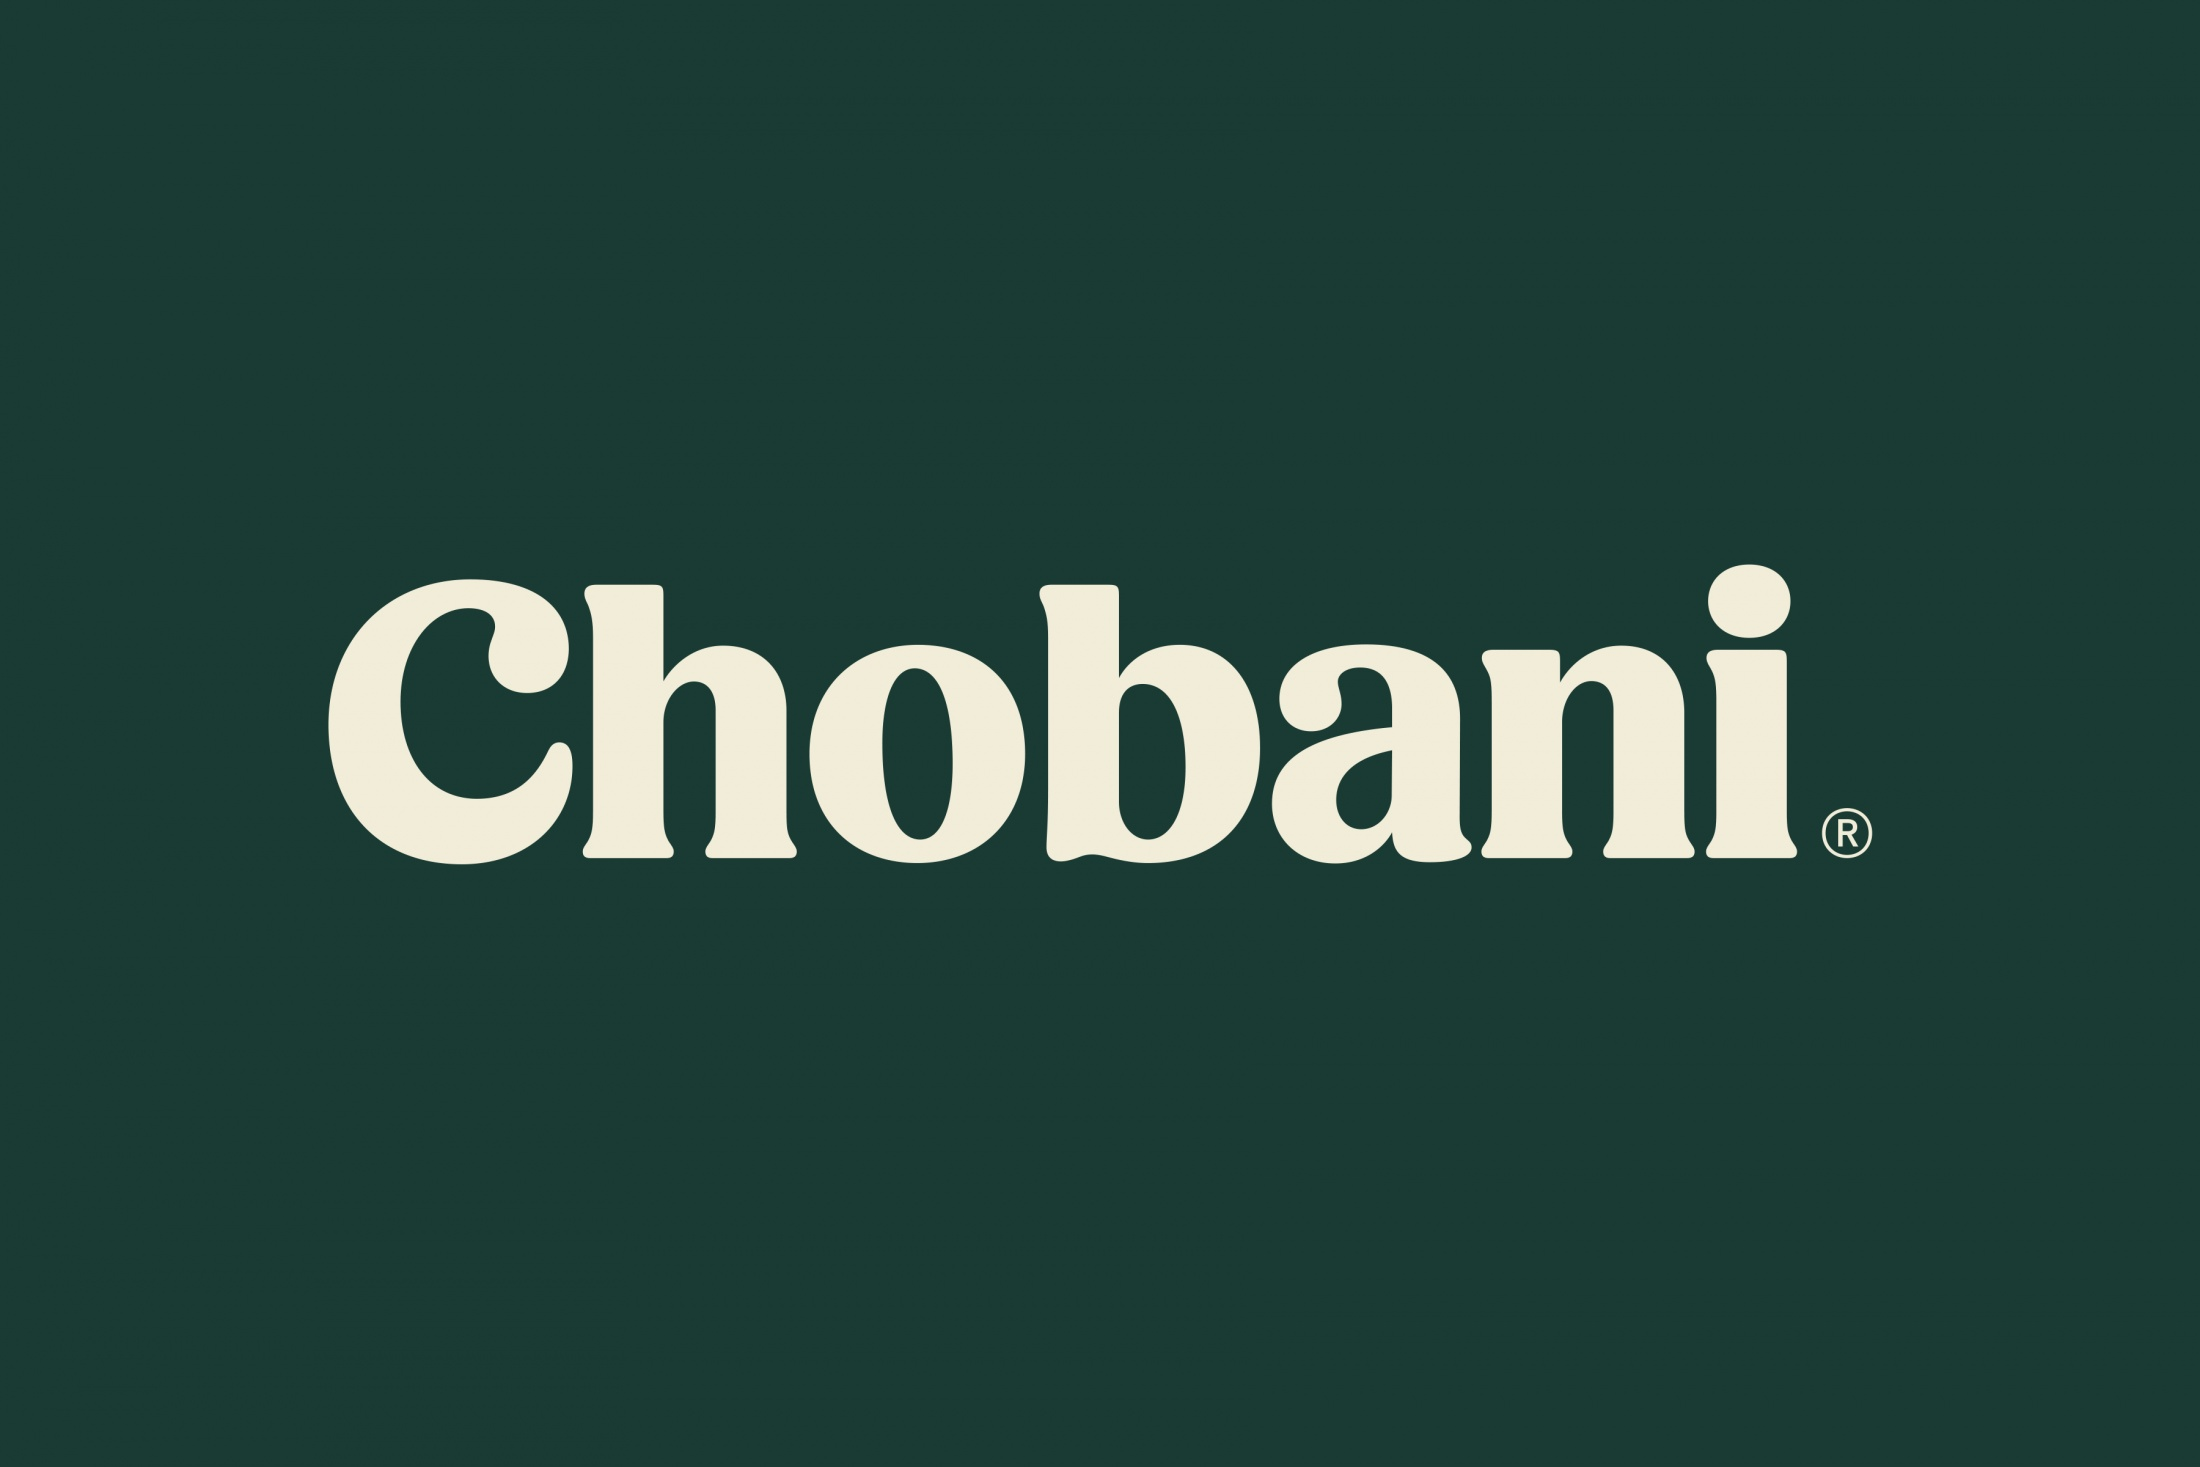 Image Media for Re-imagination of Chobani